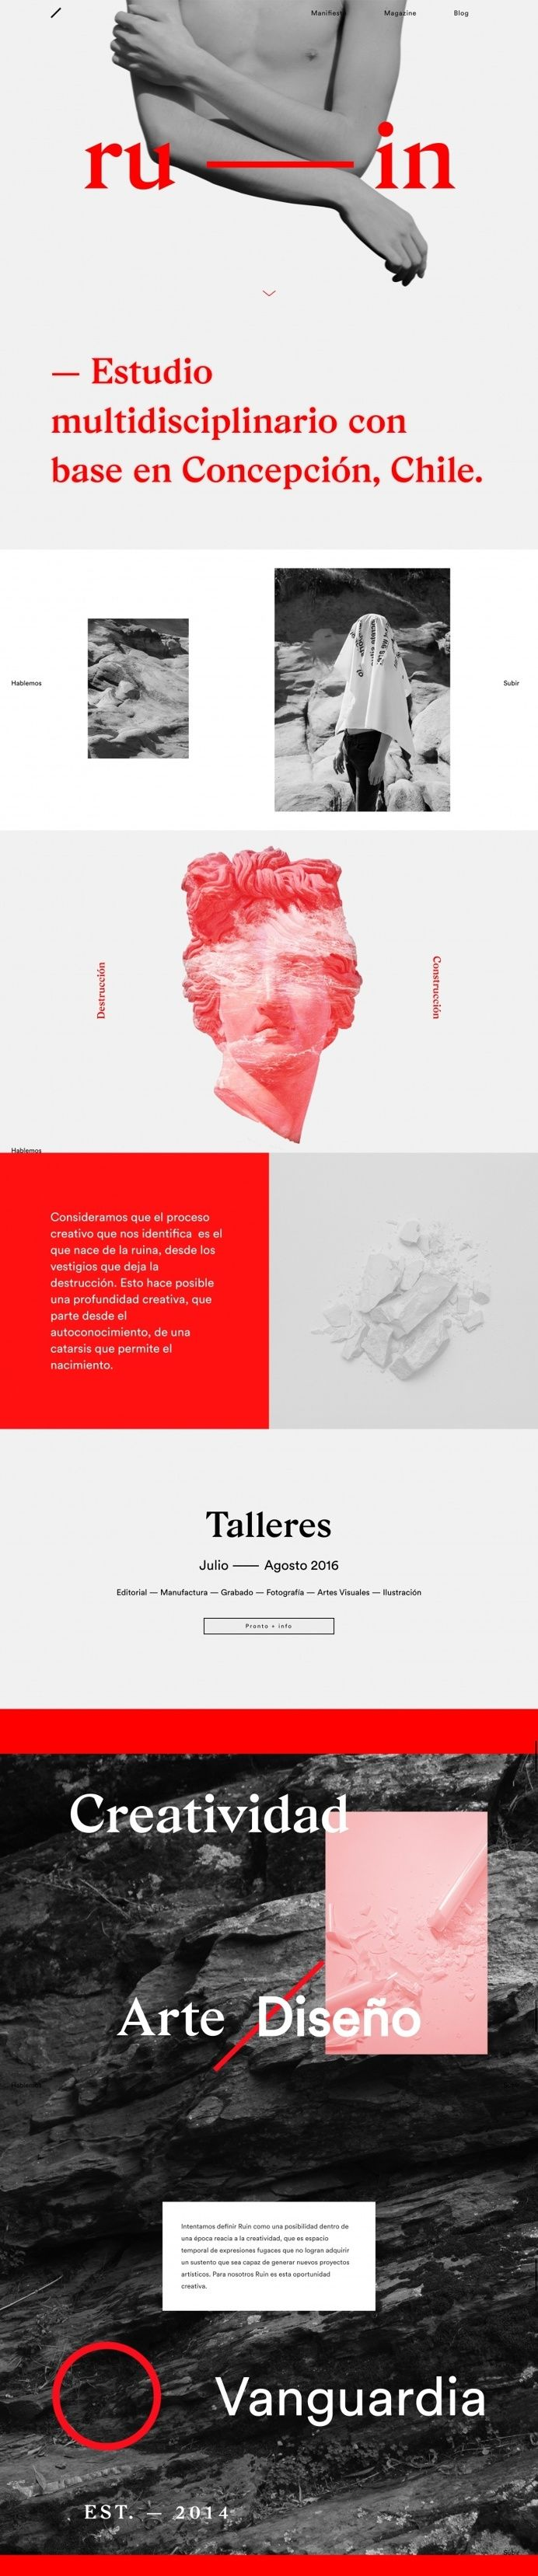 Ruin mag webdesign website beautiful minimal best cool style web html css gallery trend site of the day award mindsparkle mag designblog hig in Websites We Love